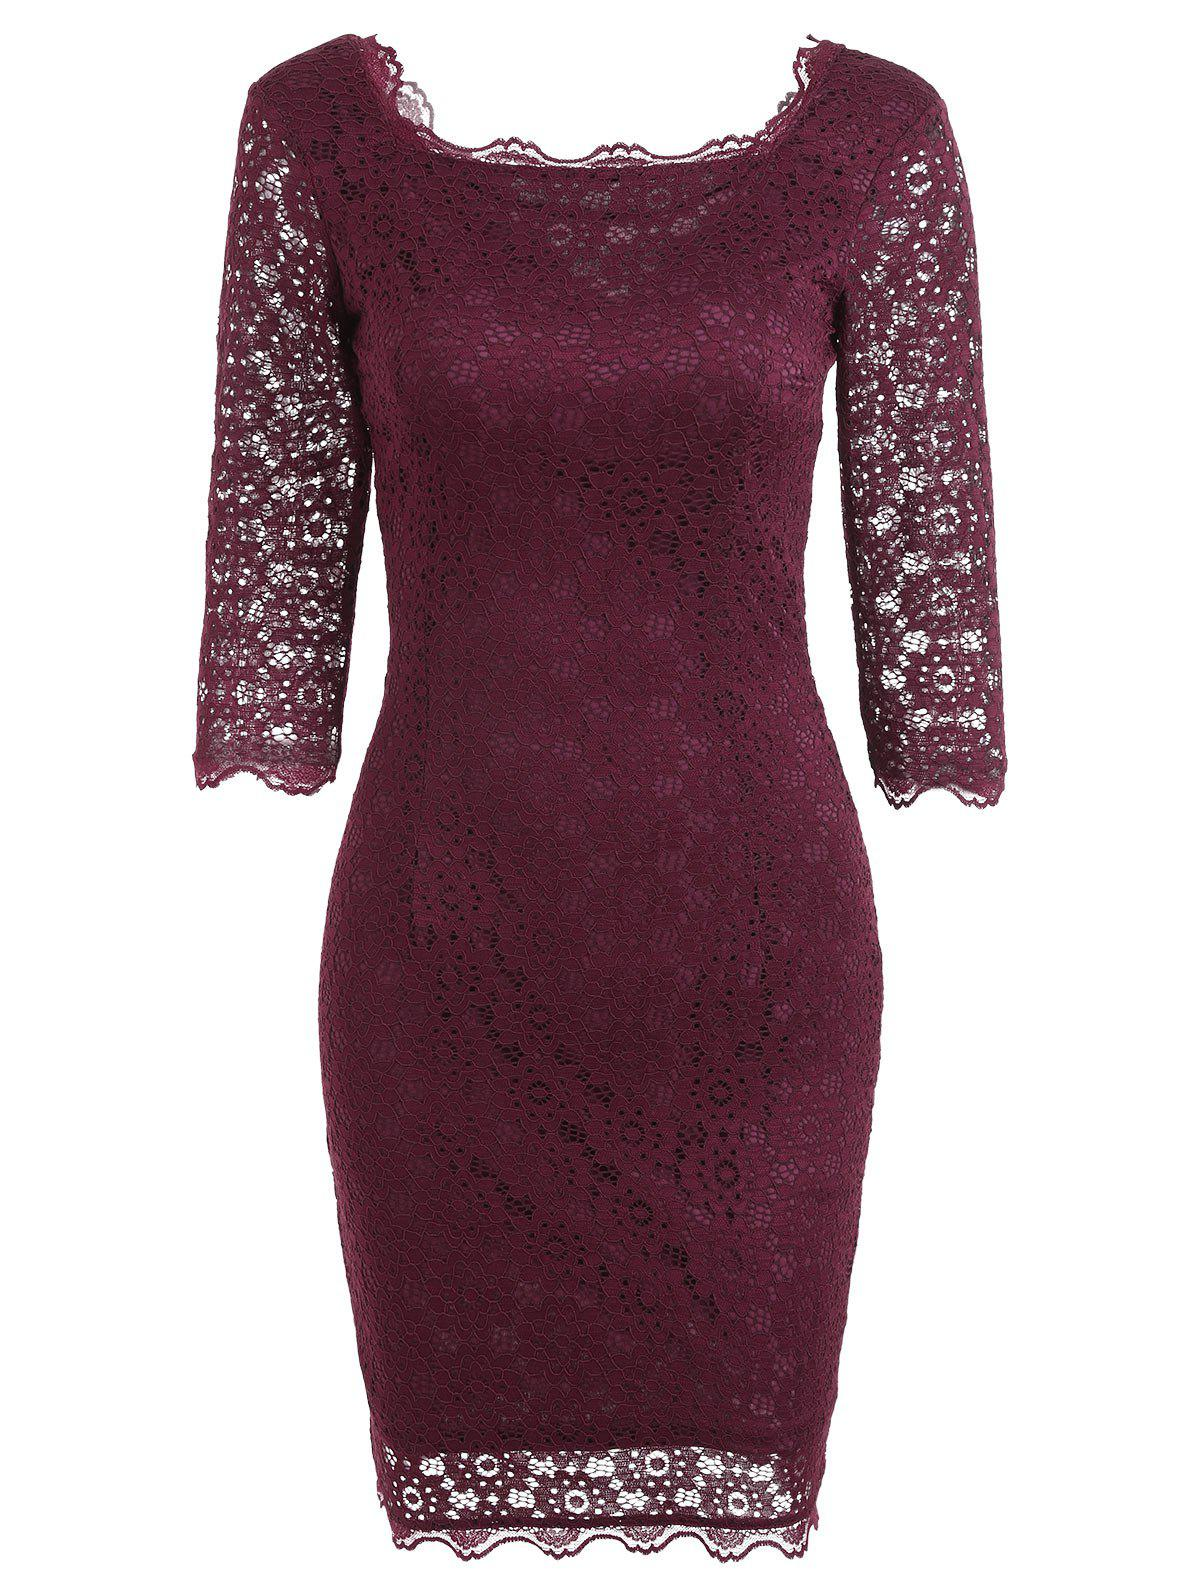 Cut Out Lace Bodycon Party Dress - Rouge vineux M